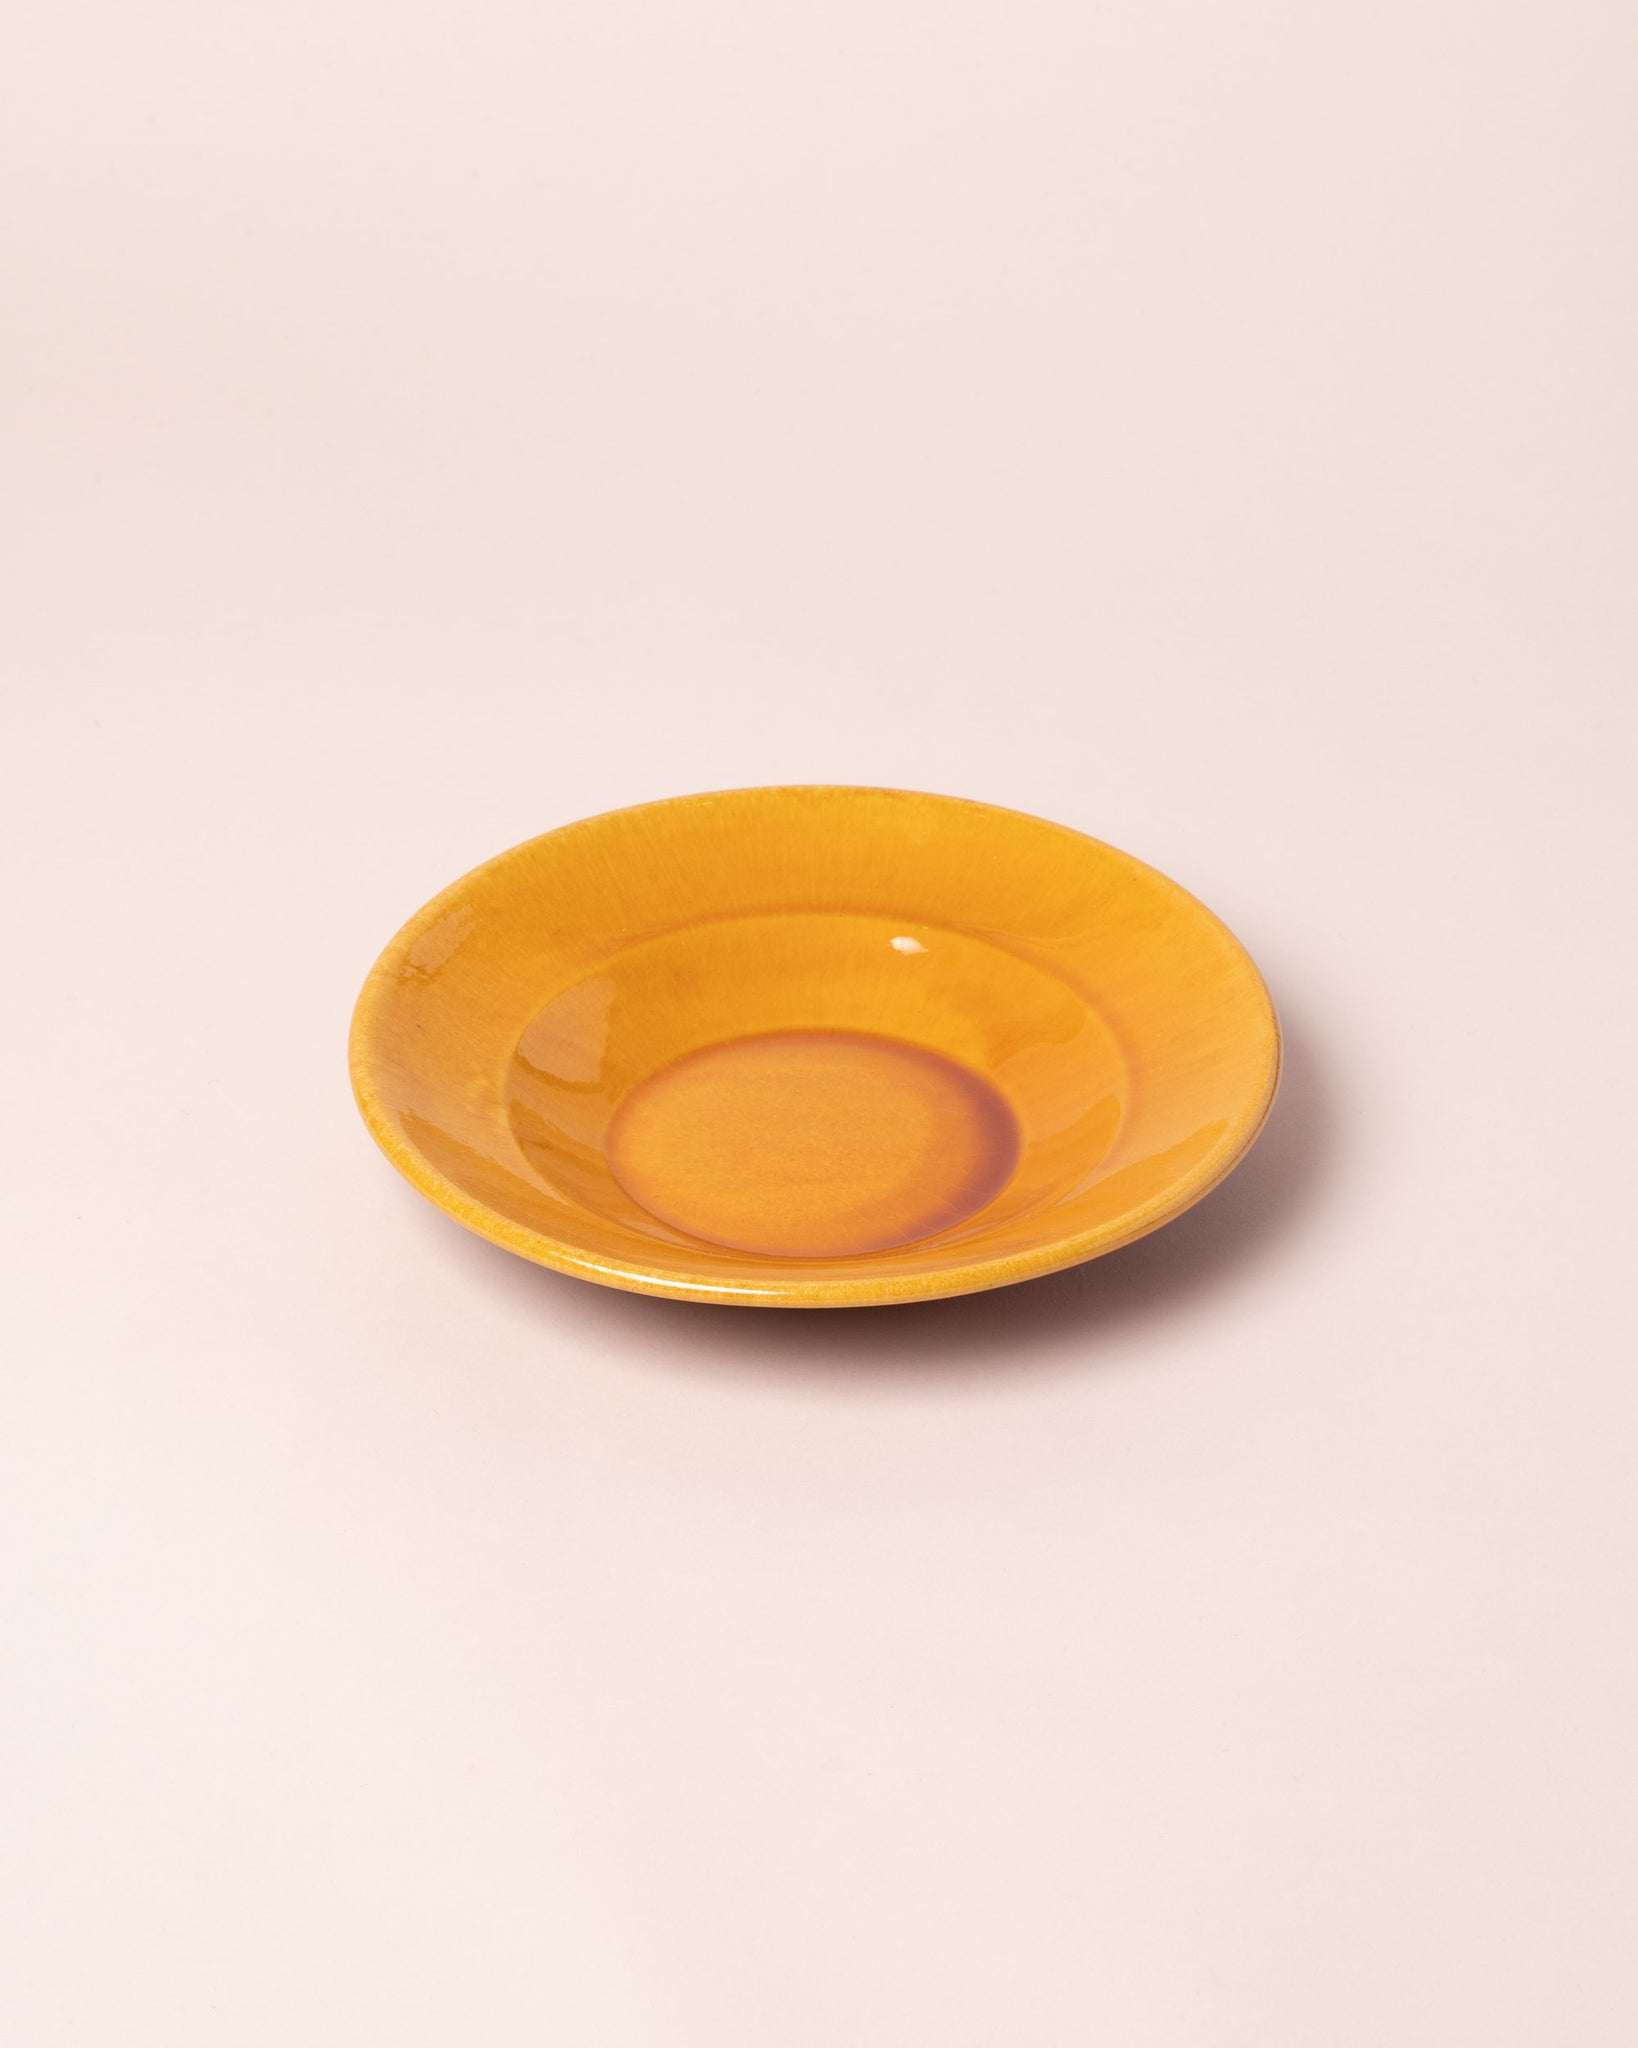 La Ceramica Shallow Bowl caramel yellow